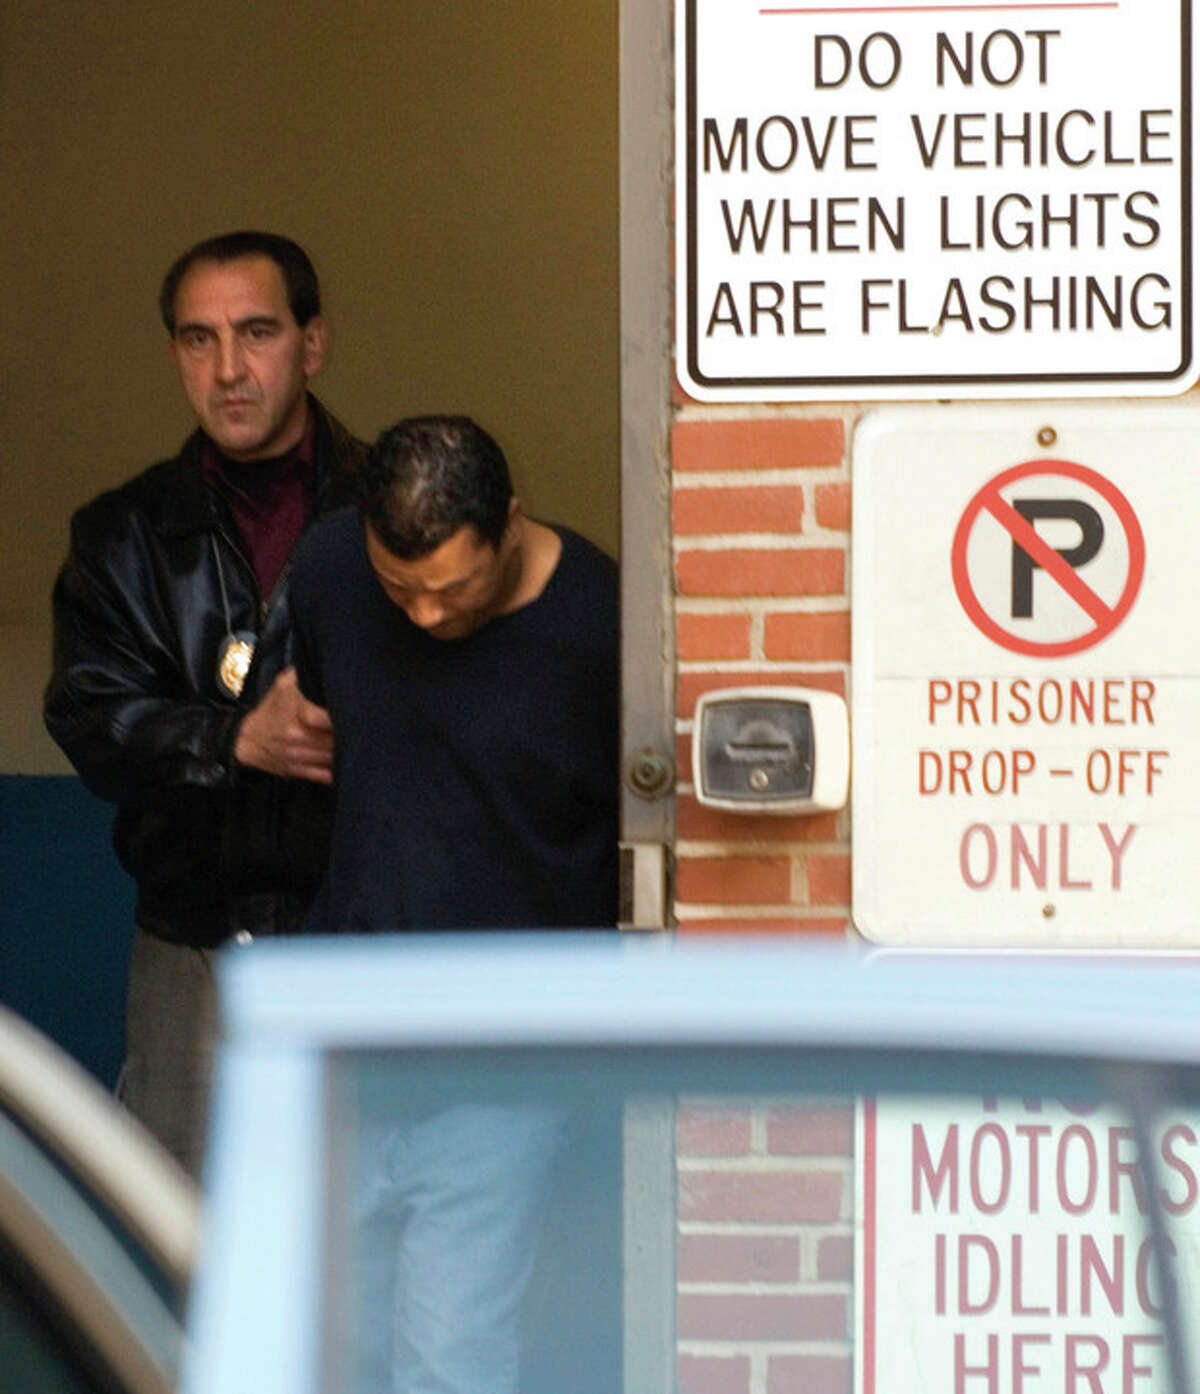 Stamford Police Lt. John Forlivio, left, escorts Harry Gonzalez 38, to an arraignment, Monday, Oct. 31, 2005 in Stamford Conn., in connection with the Oct. 6 murder of Joanne Trautwein, 75, of Stamford. Gonzalez and his girlfriend, Jennifer Kos, 28, were arrested Friday at a Burger King in Shelton, Conn. They were charged with felony murder and are each being held on $2 million bond. (AP Photo/Douglas Healey)